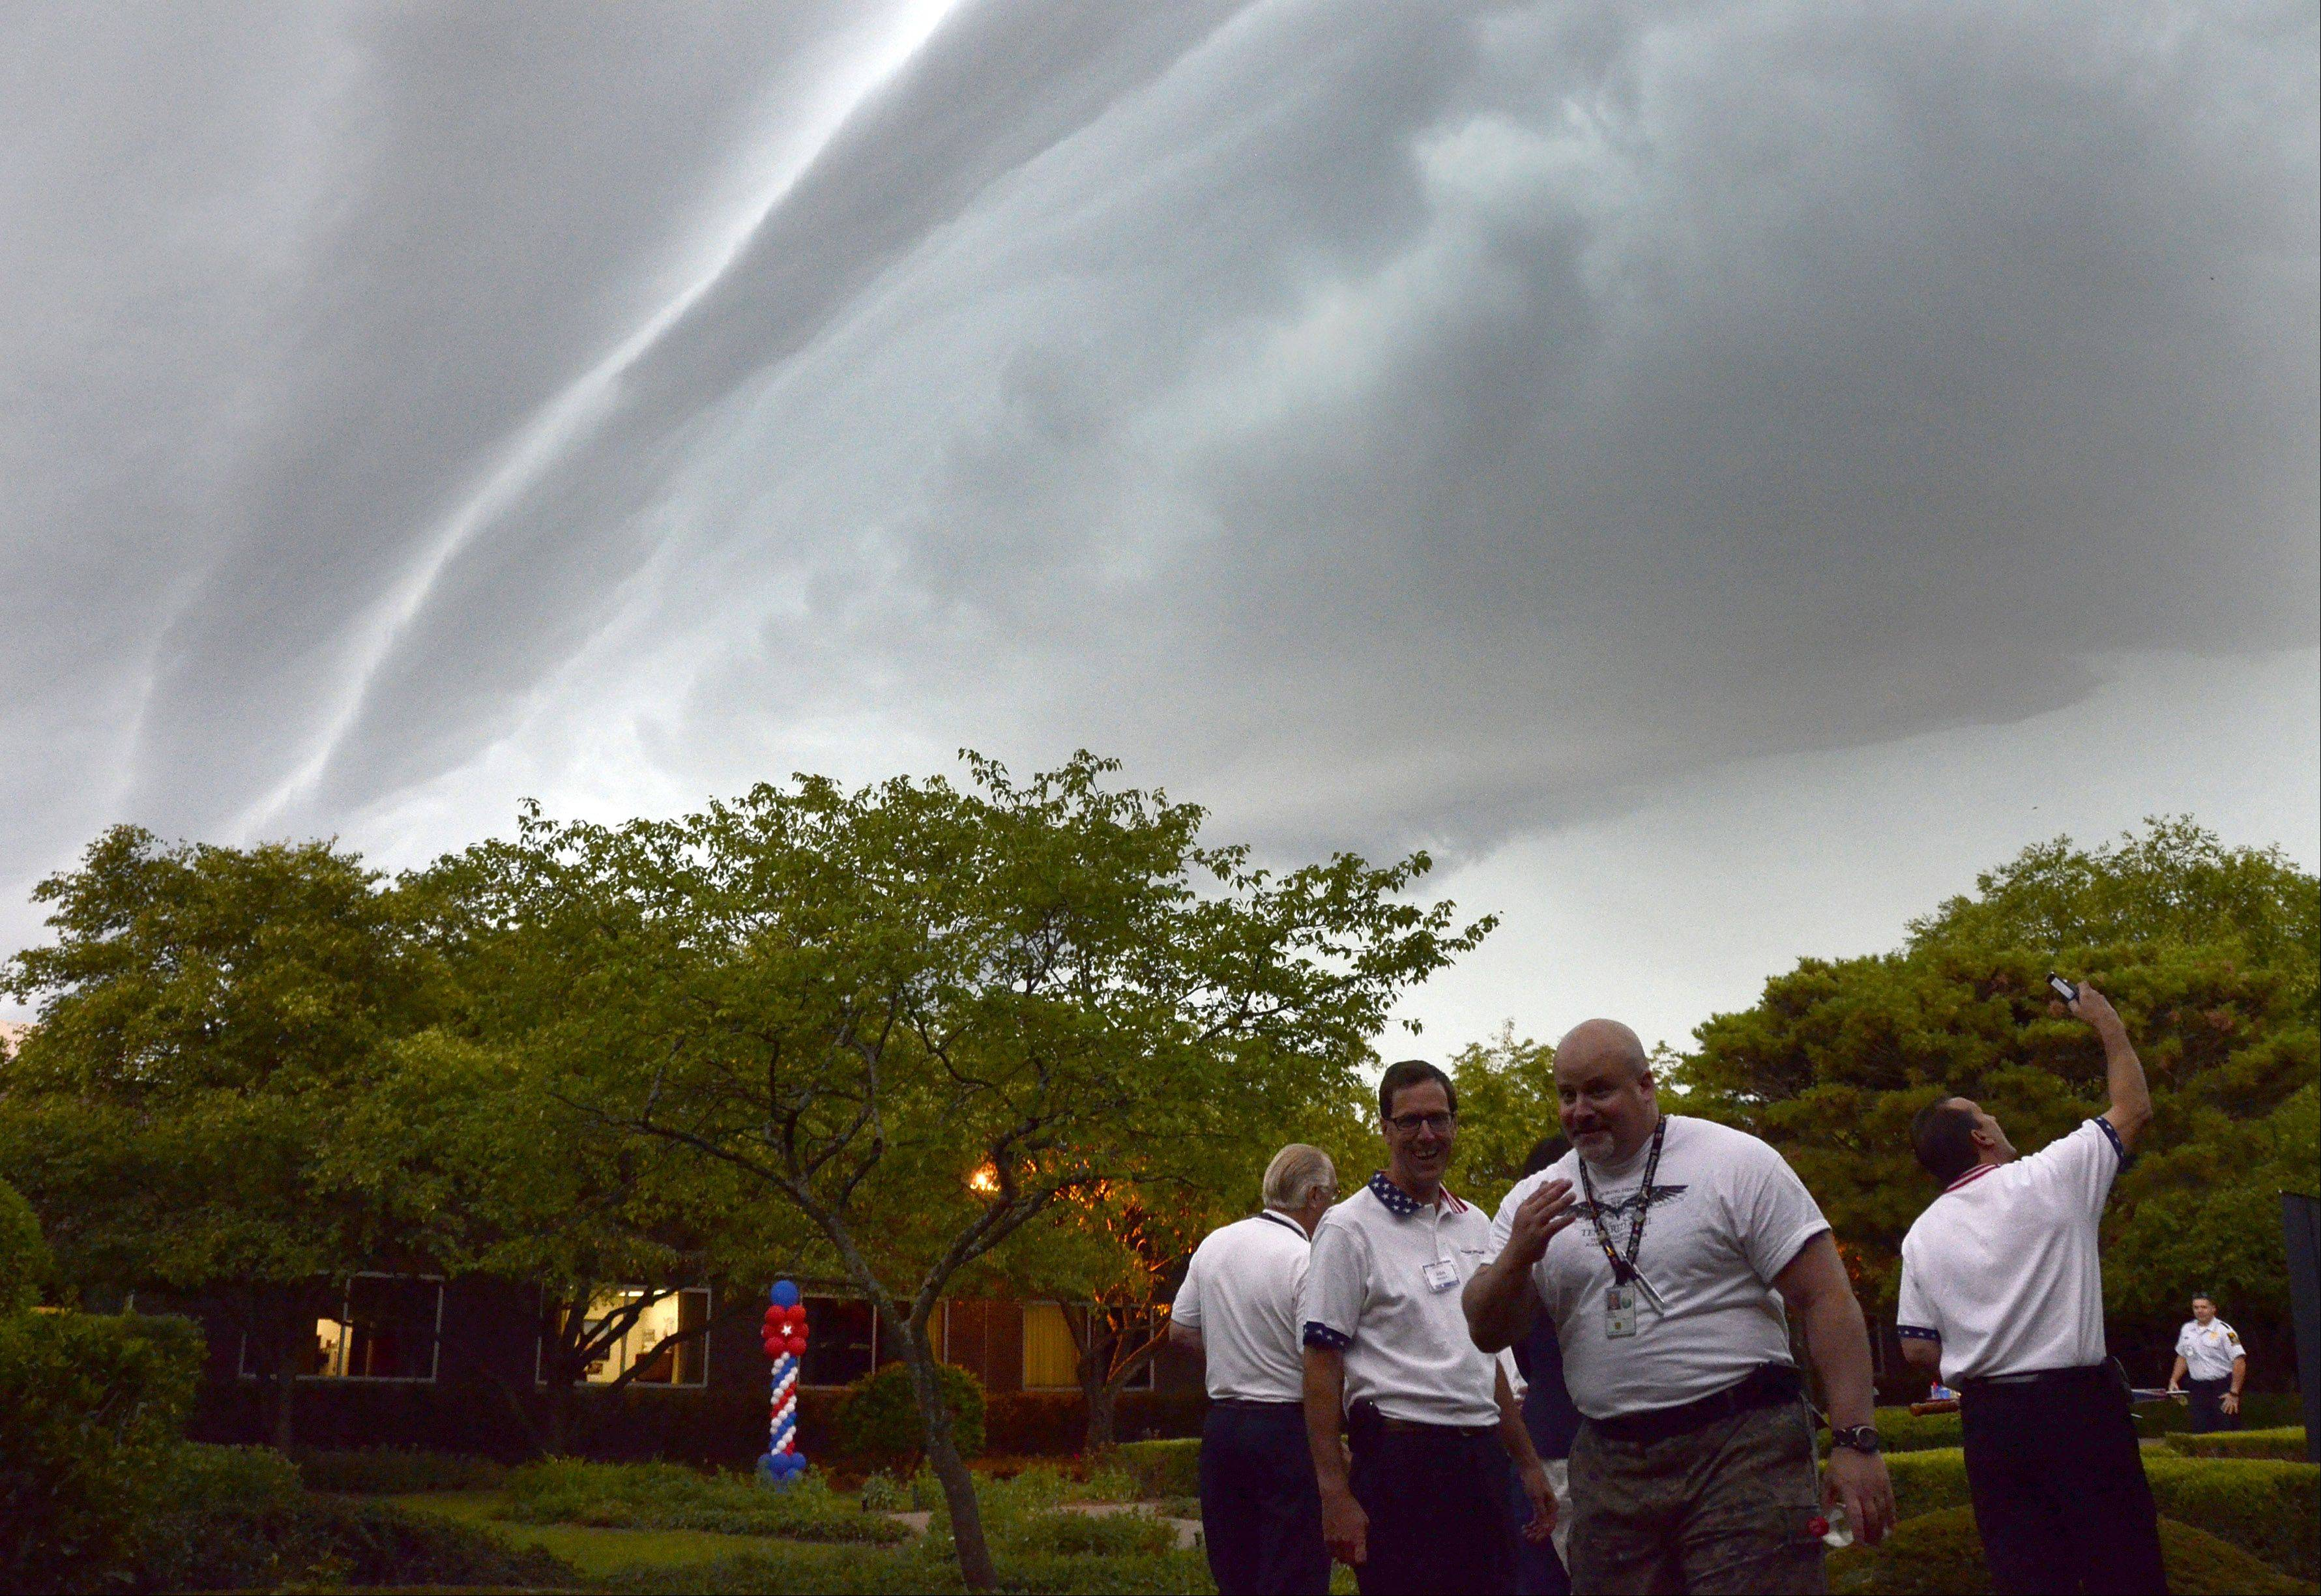 Northrop Grumman employees decide to head inside and the delay the opening of America Day as a storm front rolls in Friday morning in Rolling Meadows.